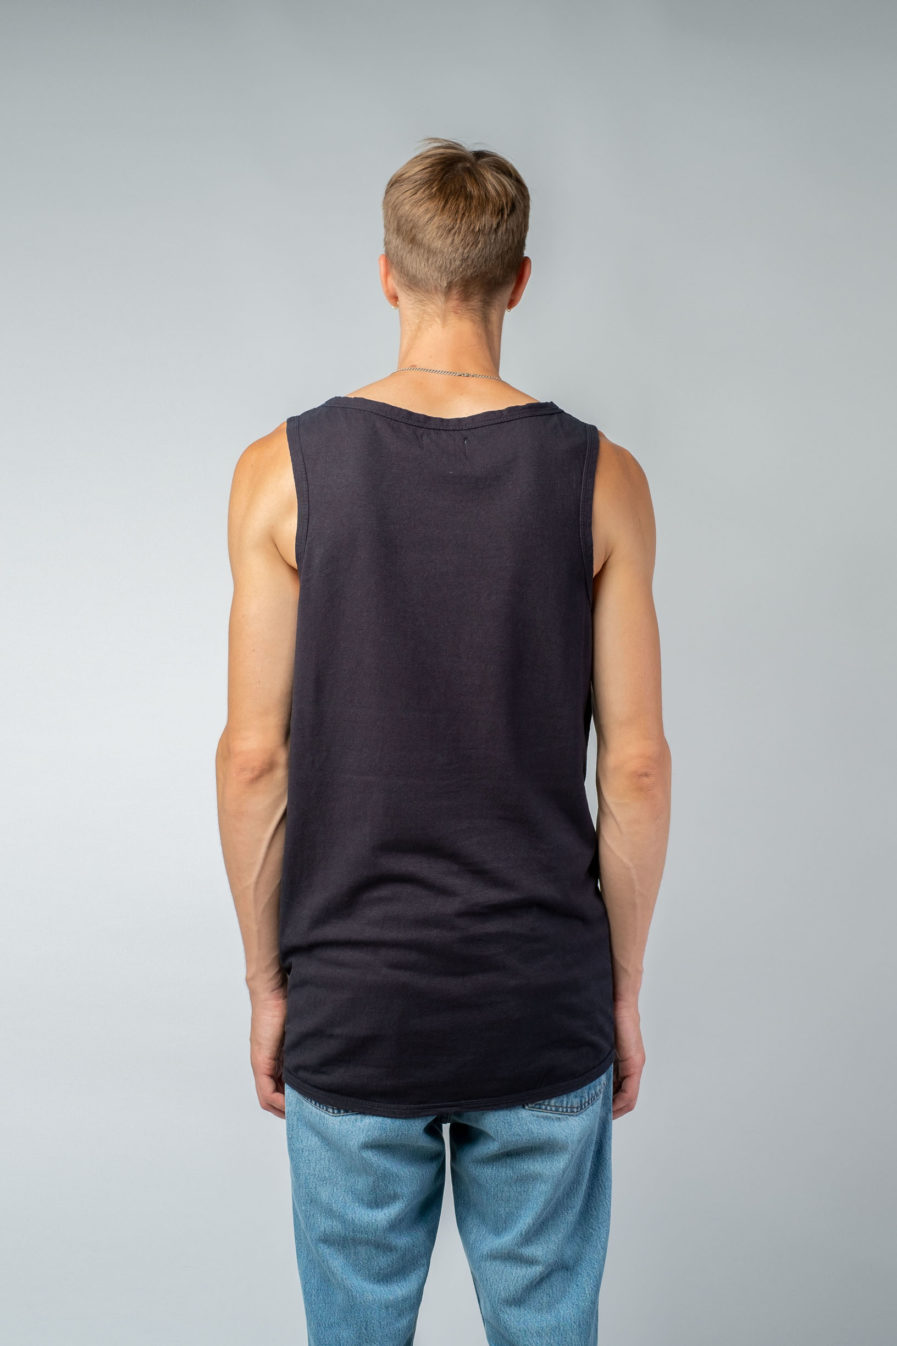 MAN unisex singlet tanktop hemp organic cotton WILLIE Carbon black back